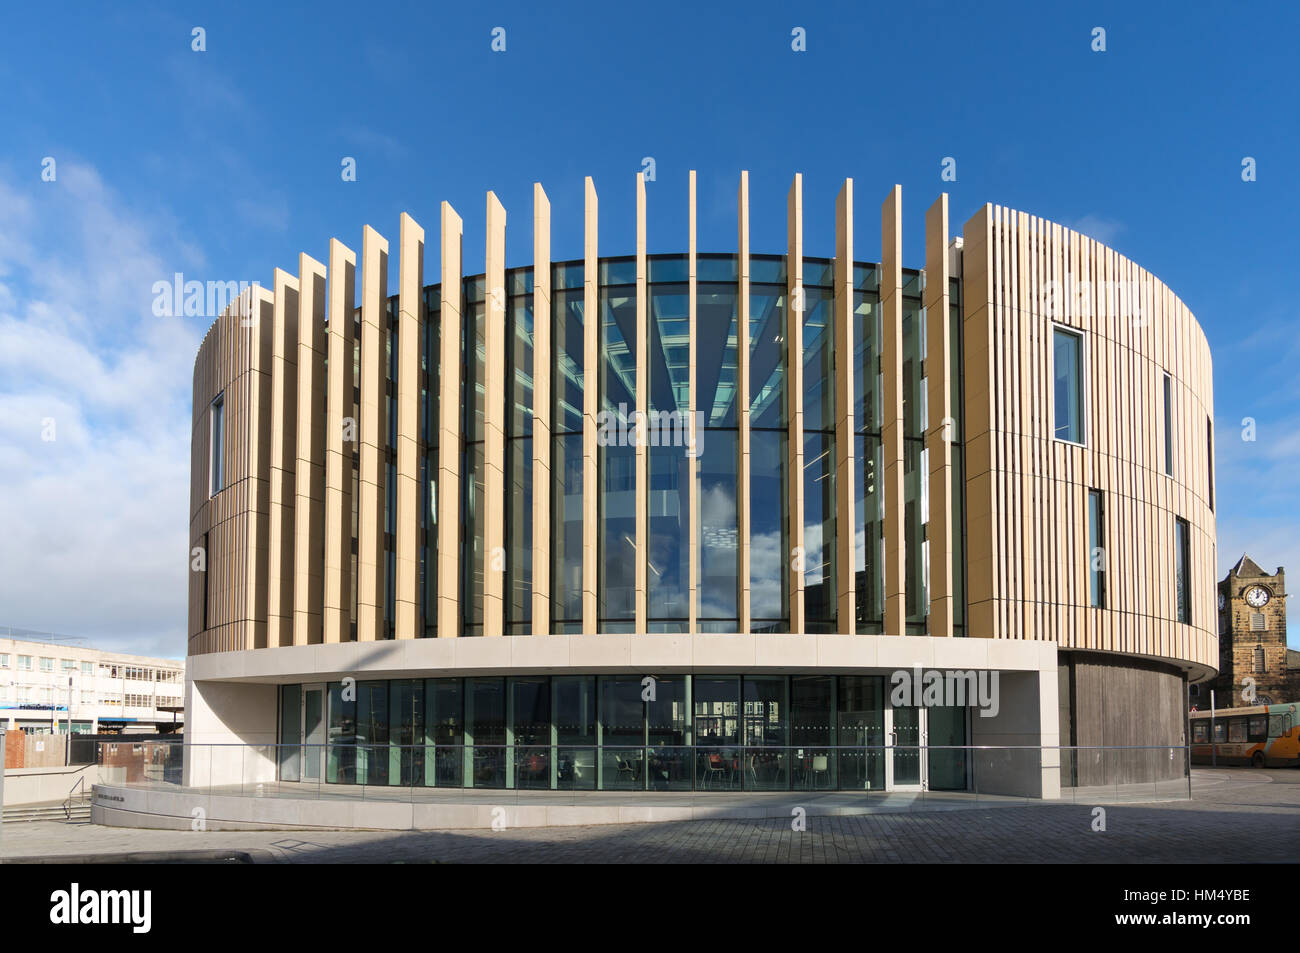 'The Word' building, national centre for the written word, South Shields, South Tyneside, England, UK - Stock Image